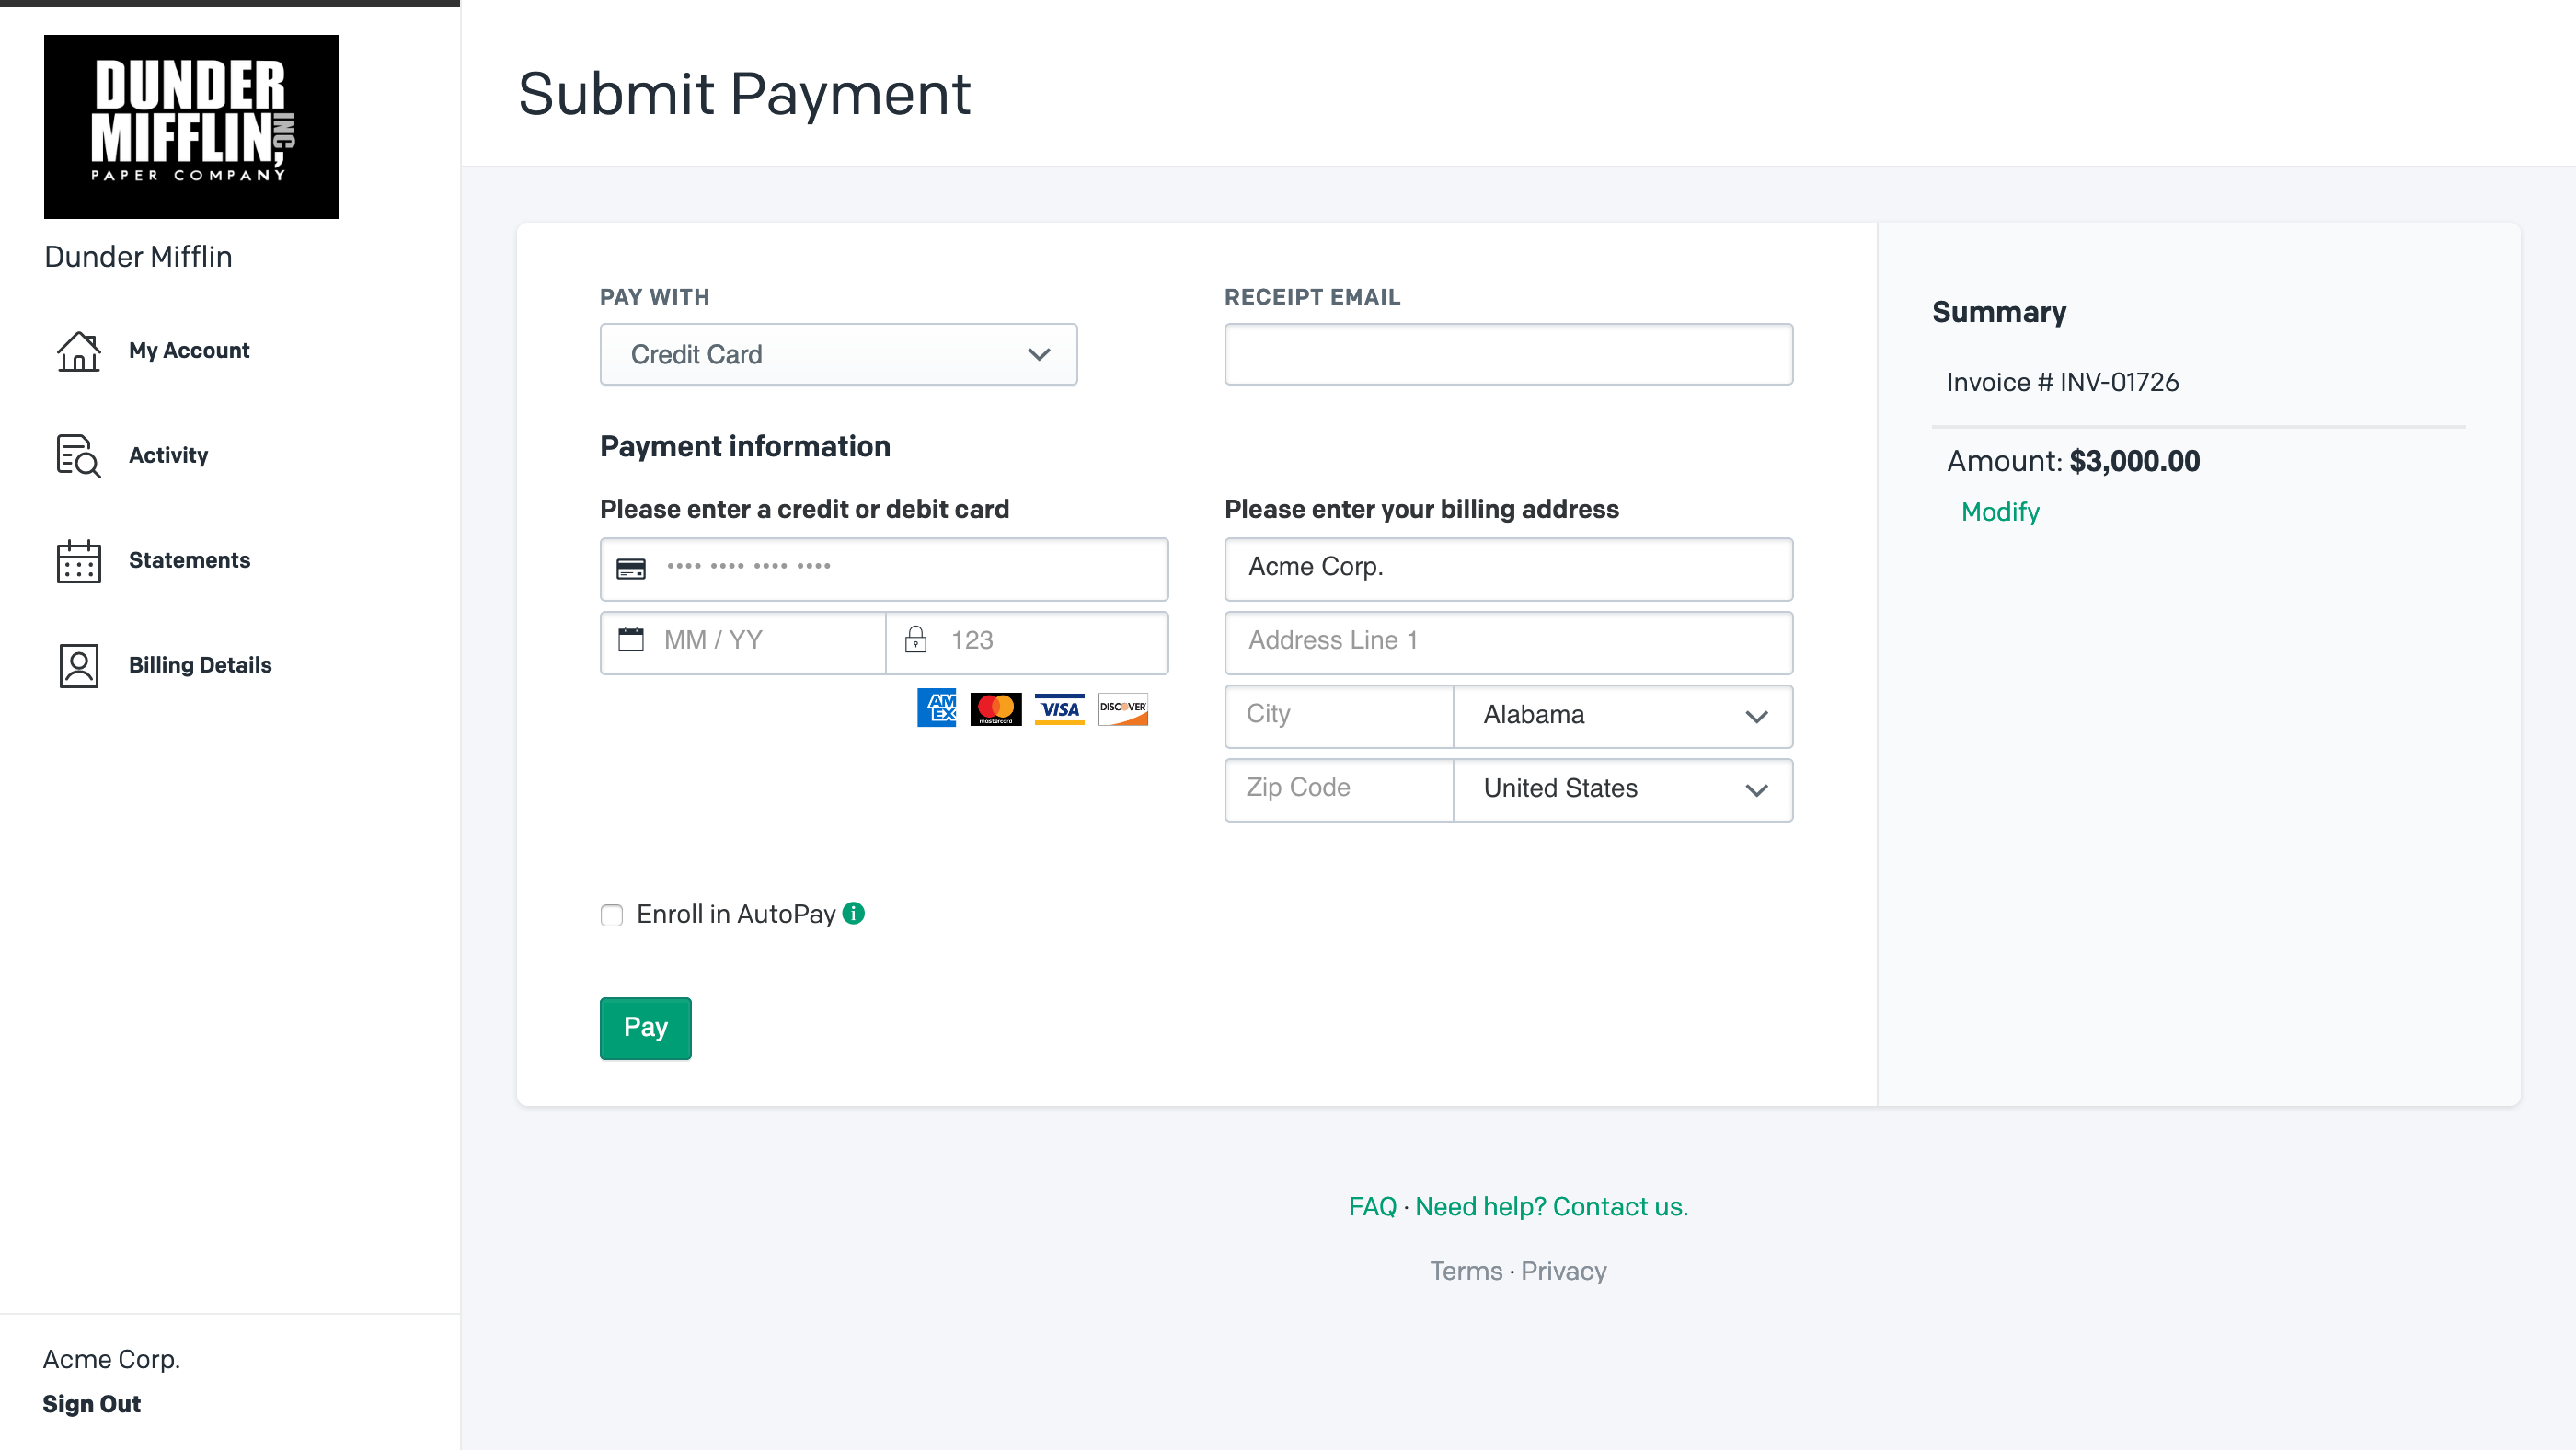 Pay Invoice with Credit Card